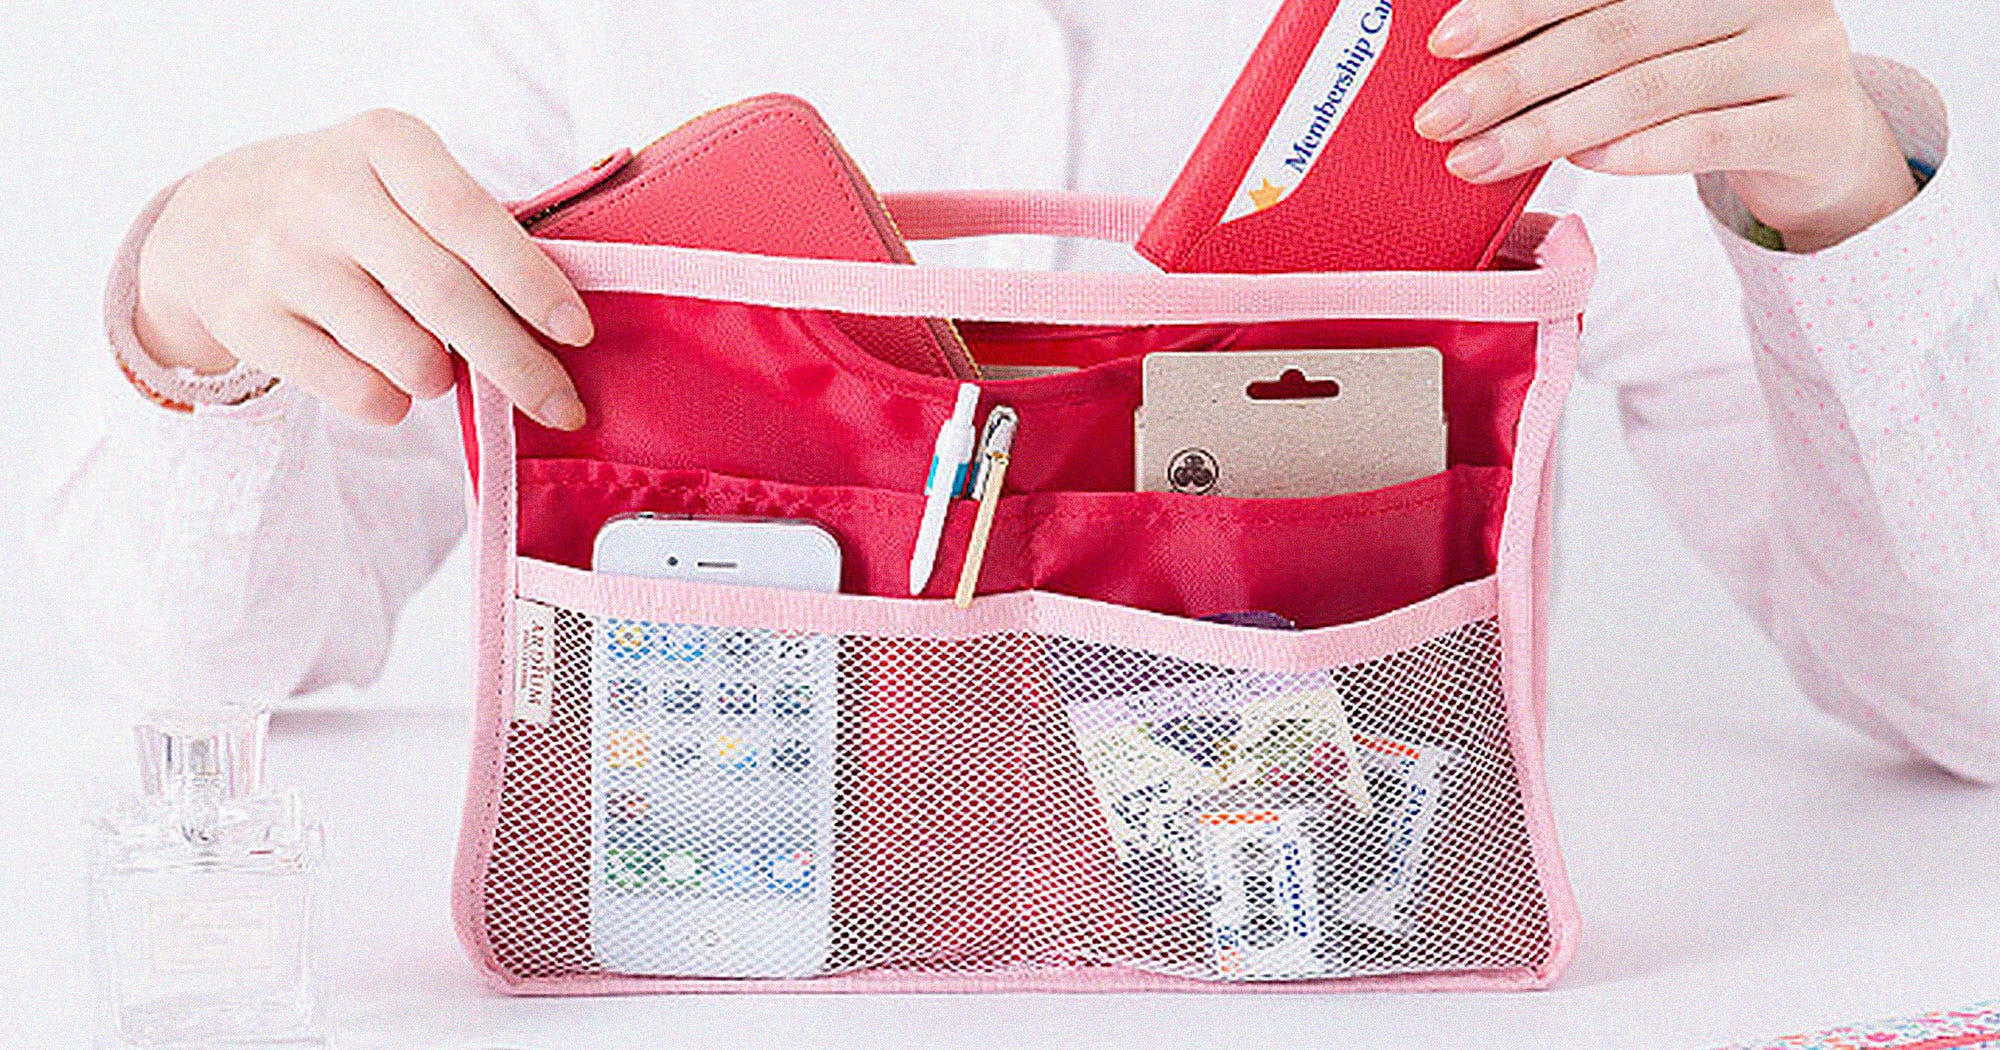 Handbag Organizers That Make Life Just A Tad Bit Easier